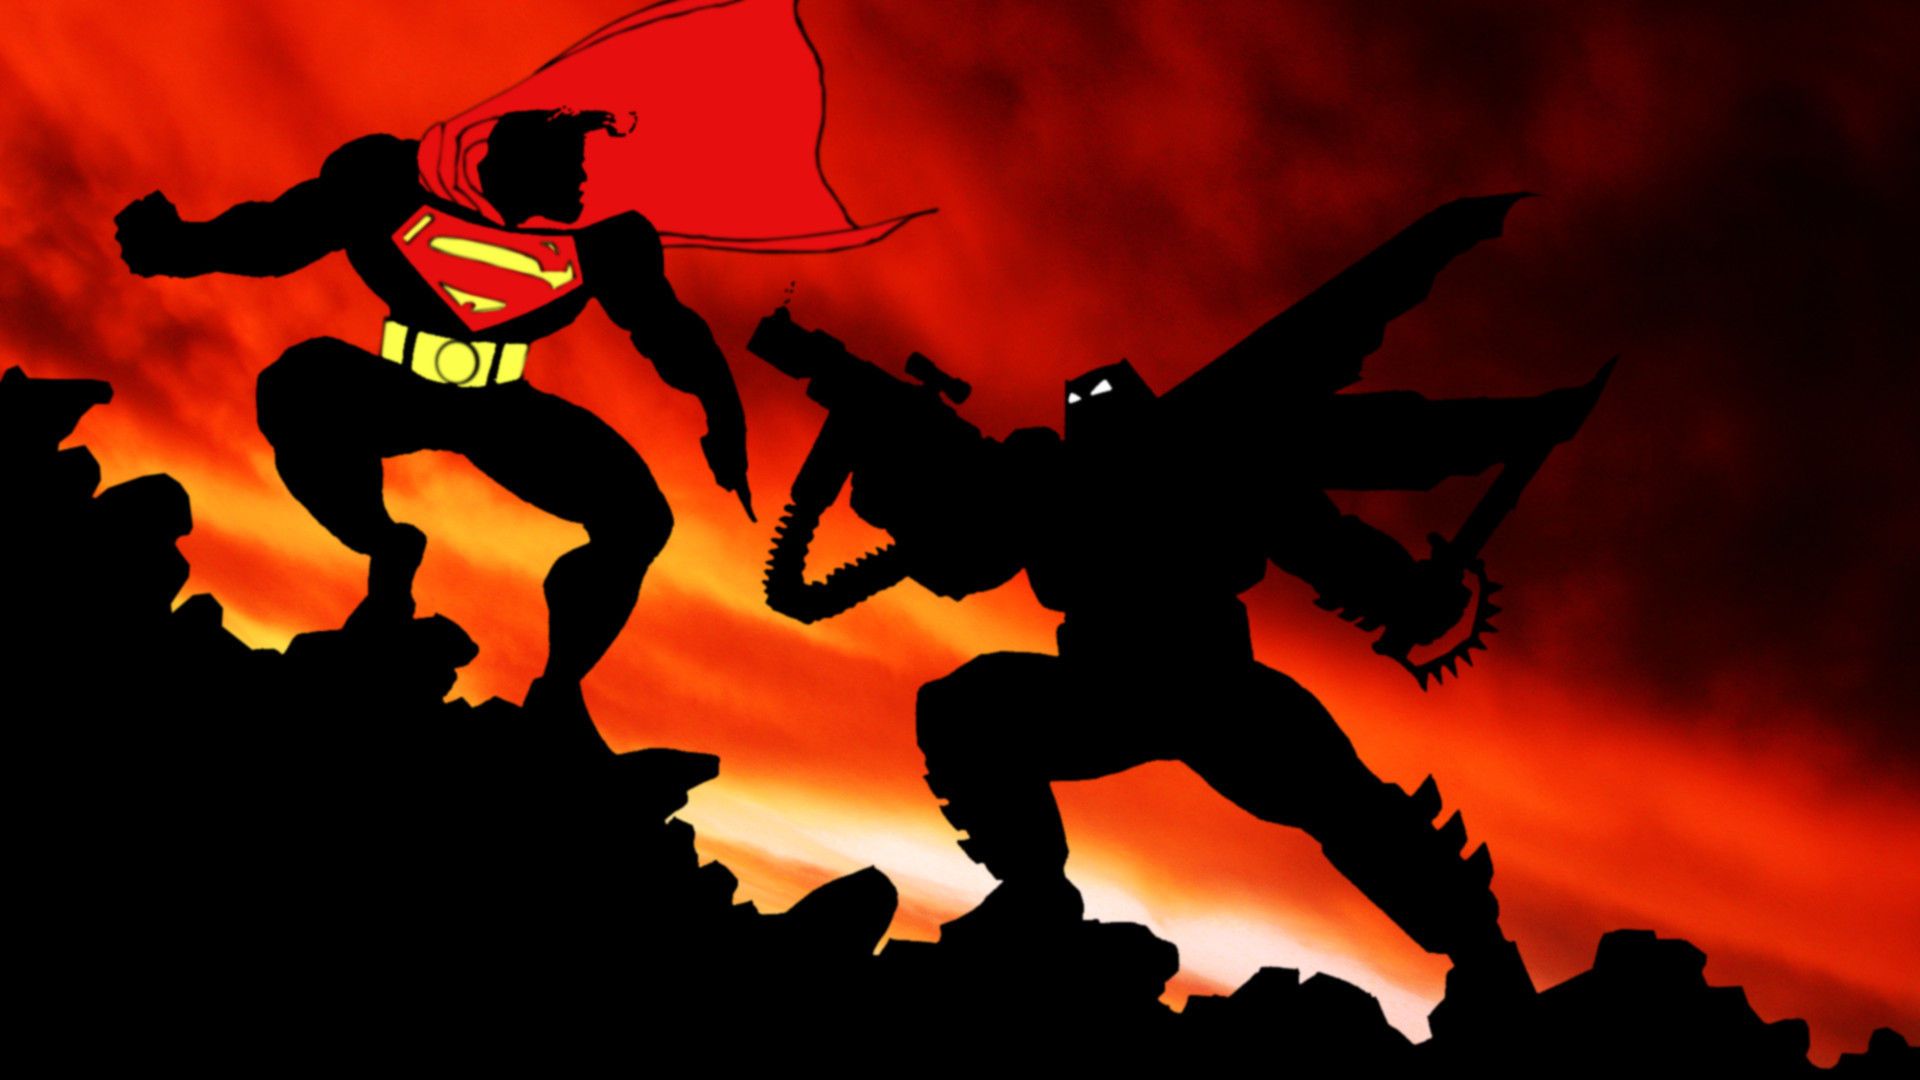 Batman v Superman: 10 Interesting Things to Know